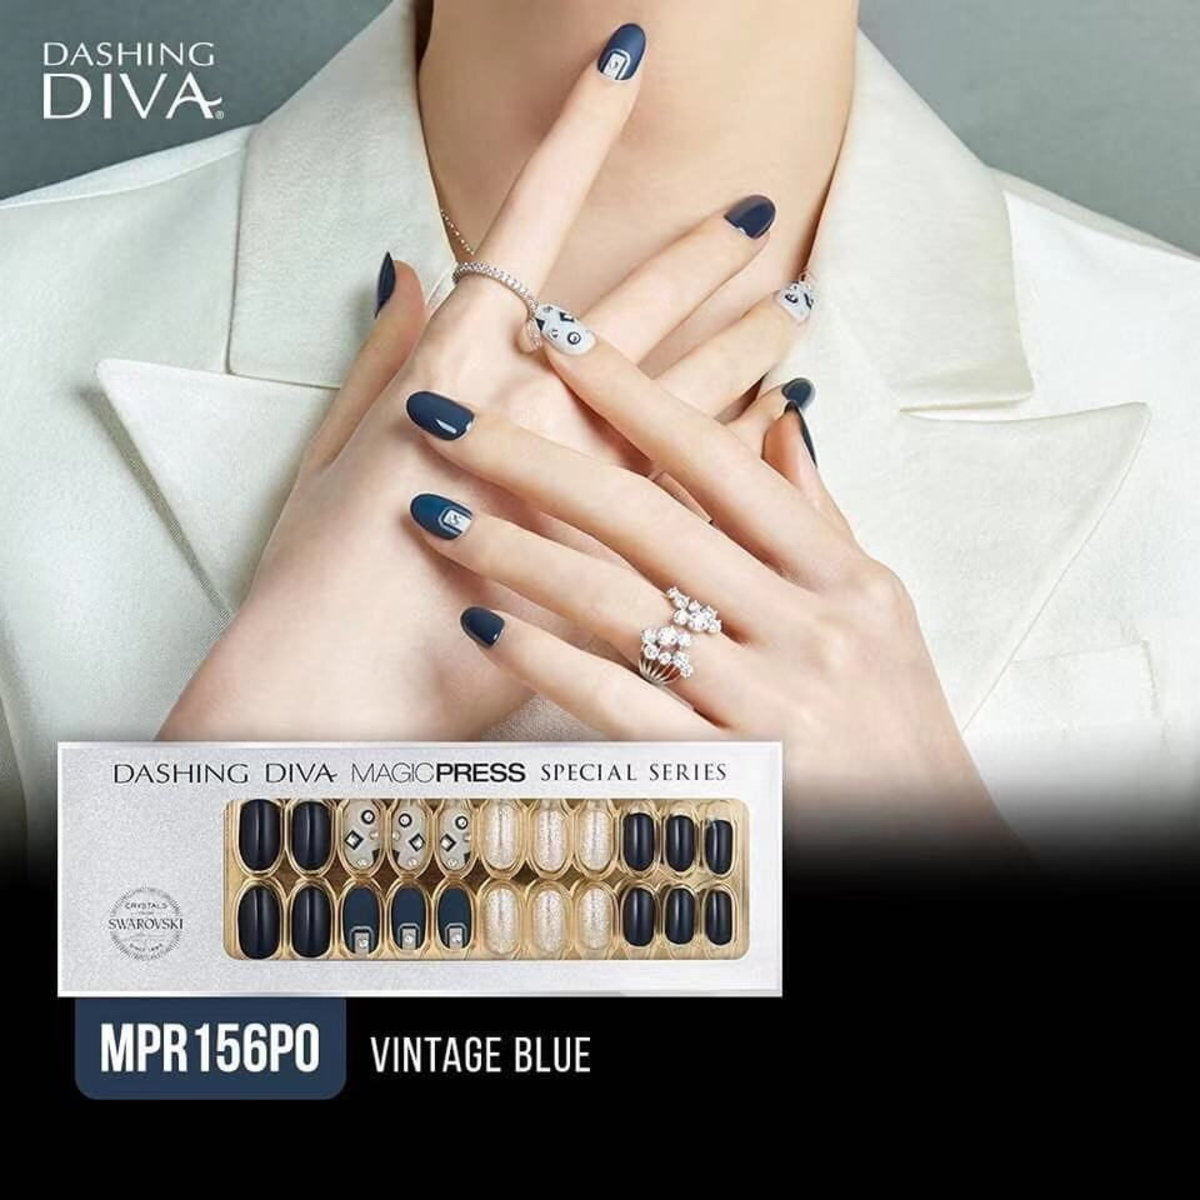 Magic Press Limited Edition Embellished with Crystals from Swarovski MPR156PO Vintage Blue